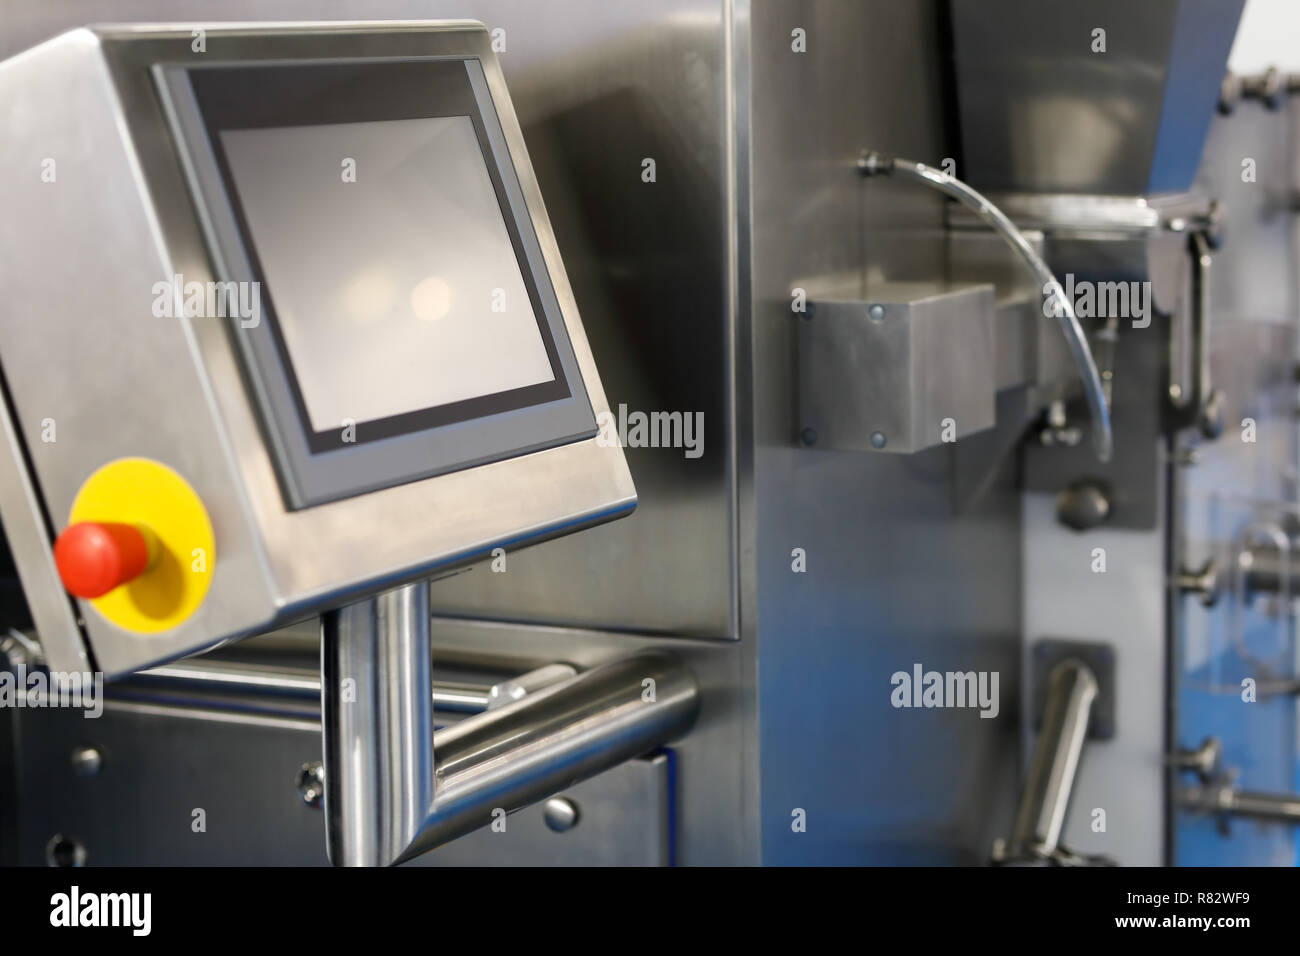 Modern stainless steel manufacturing equipment with the touchscreen control panel on the foreground. Selective focus. - Stock Image